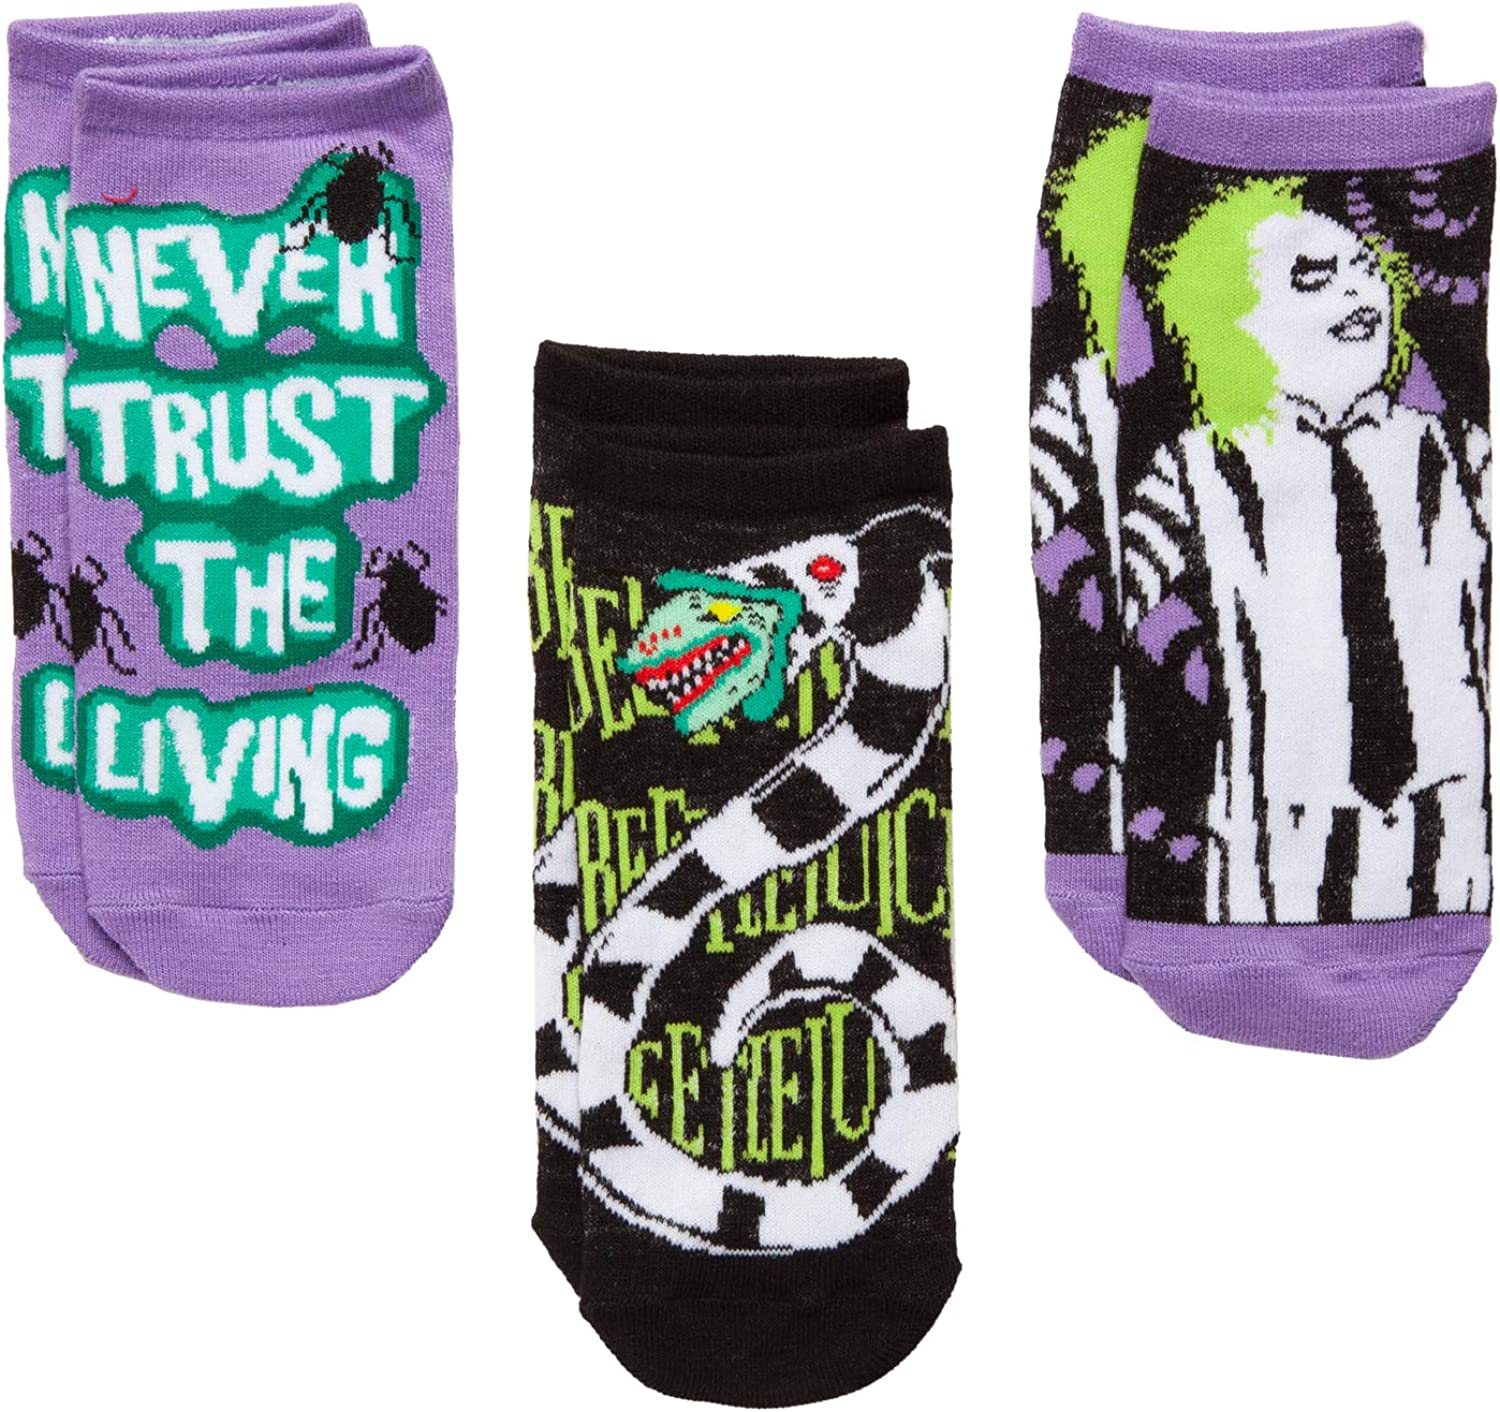 Amazon Com Beetlejuice Beetlejuice Sandworm Never Trust The Living 3 Pack Low Cut Socks Clothing